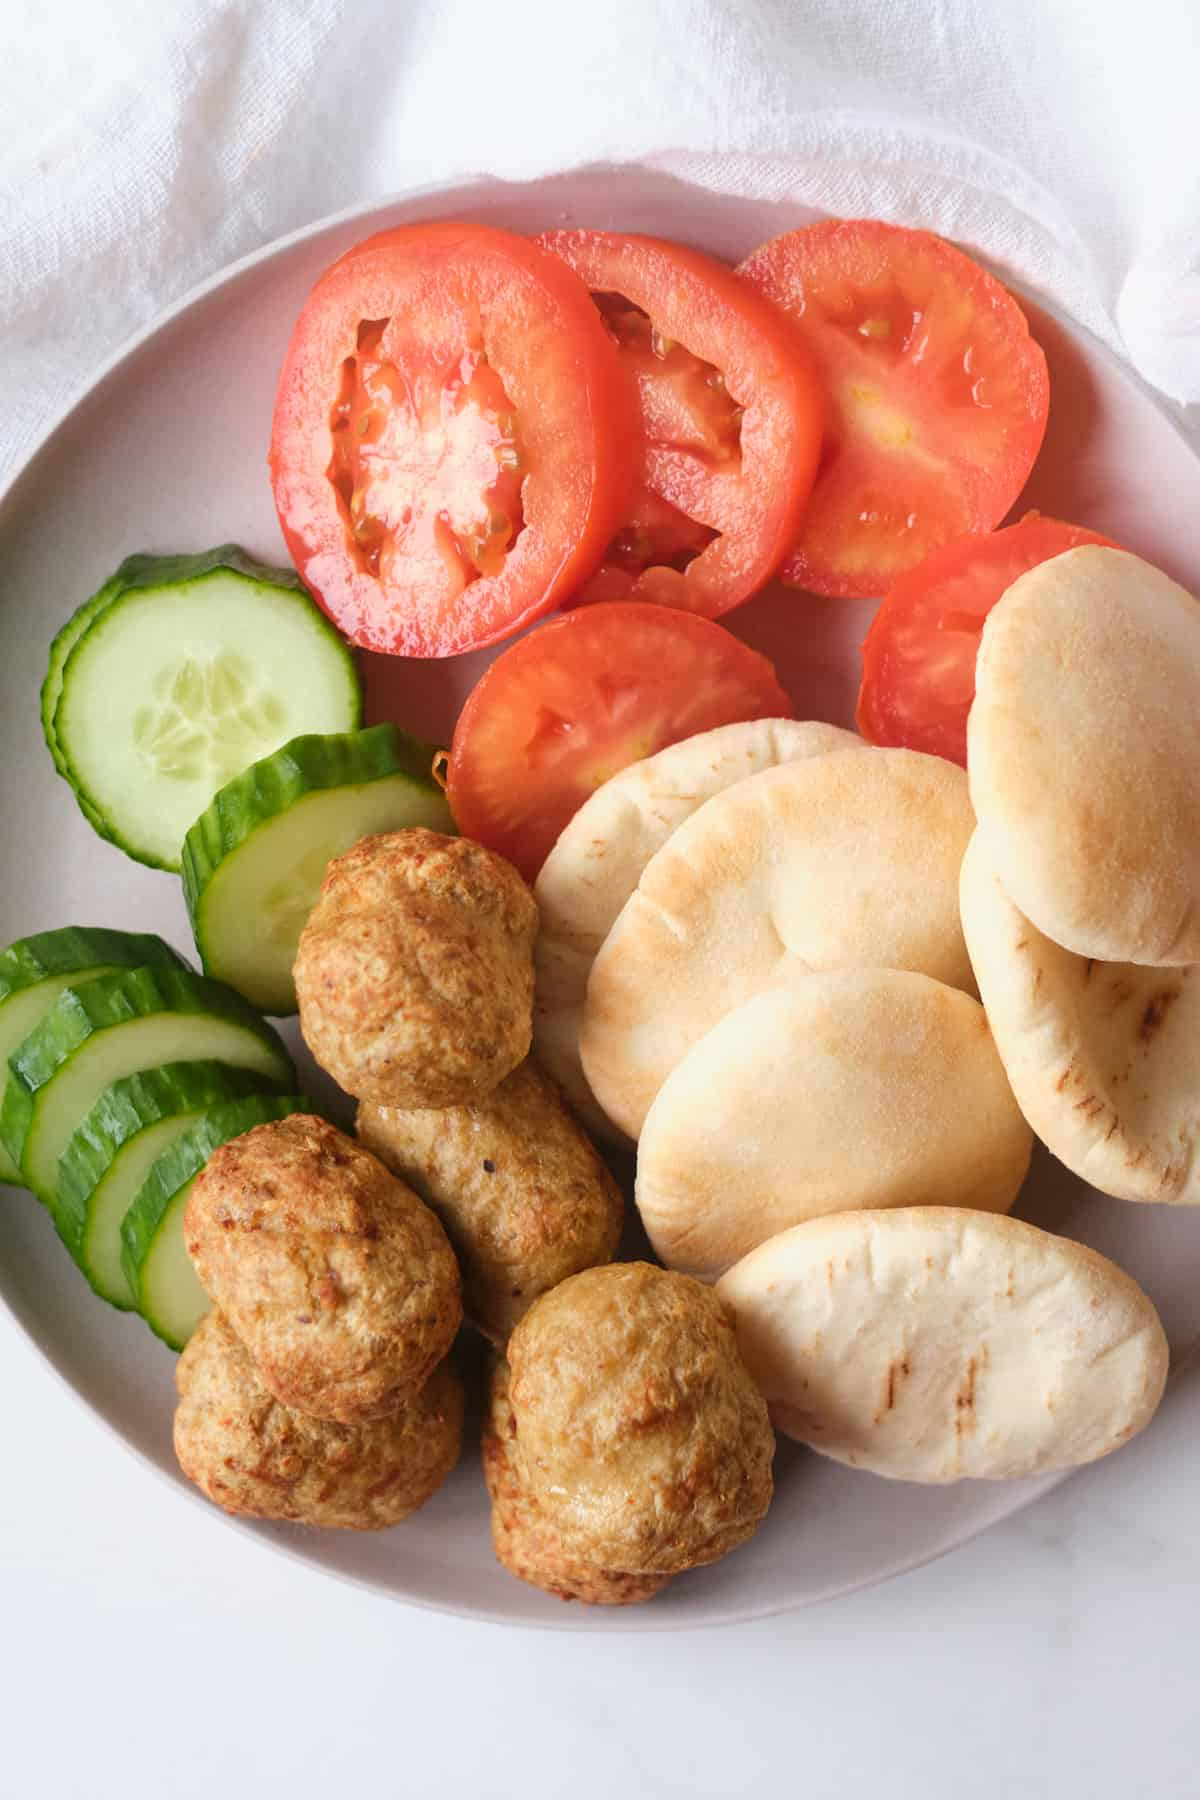 close up view of the ingredients needed for making meatball stuffed pita